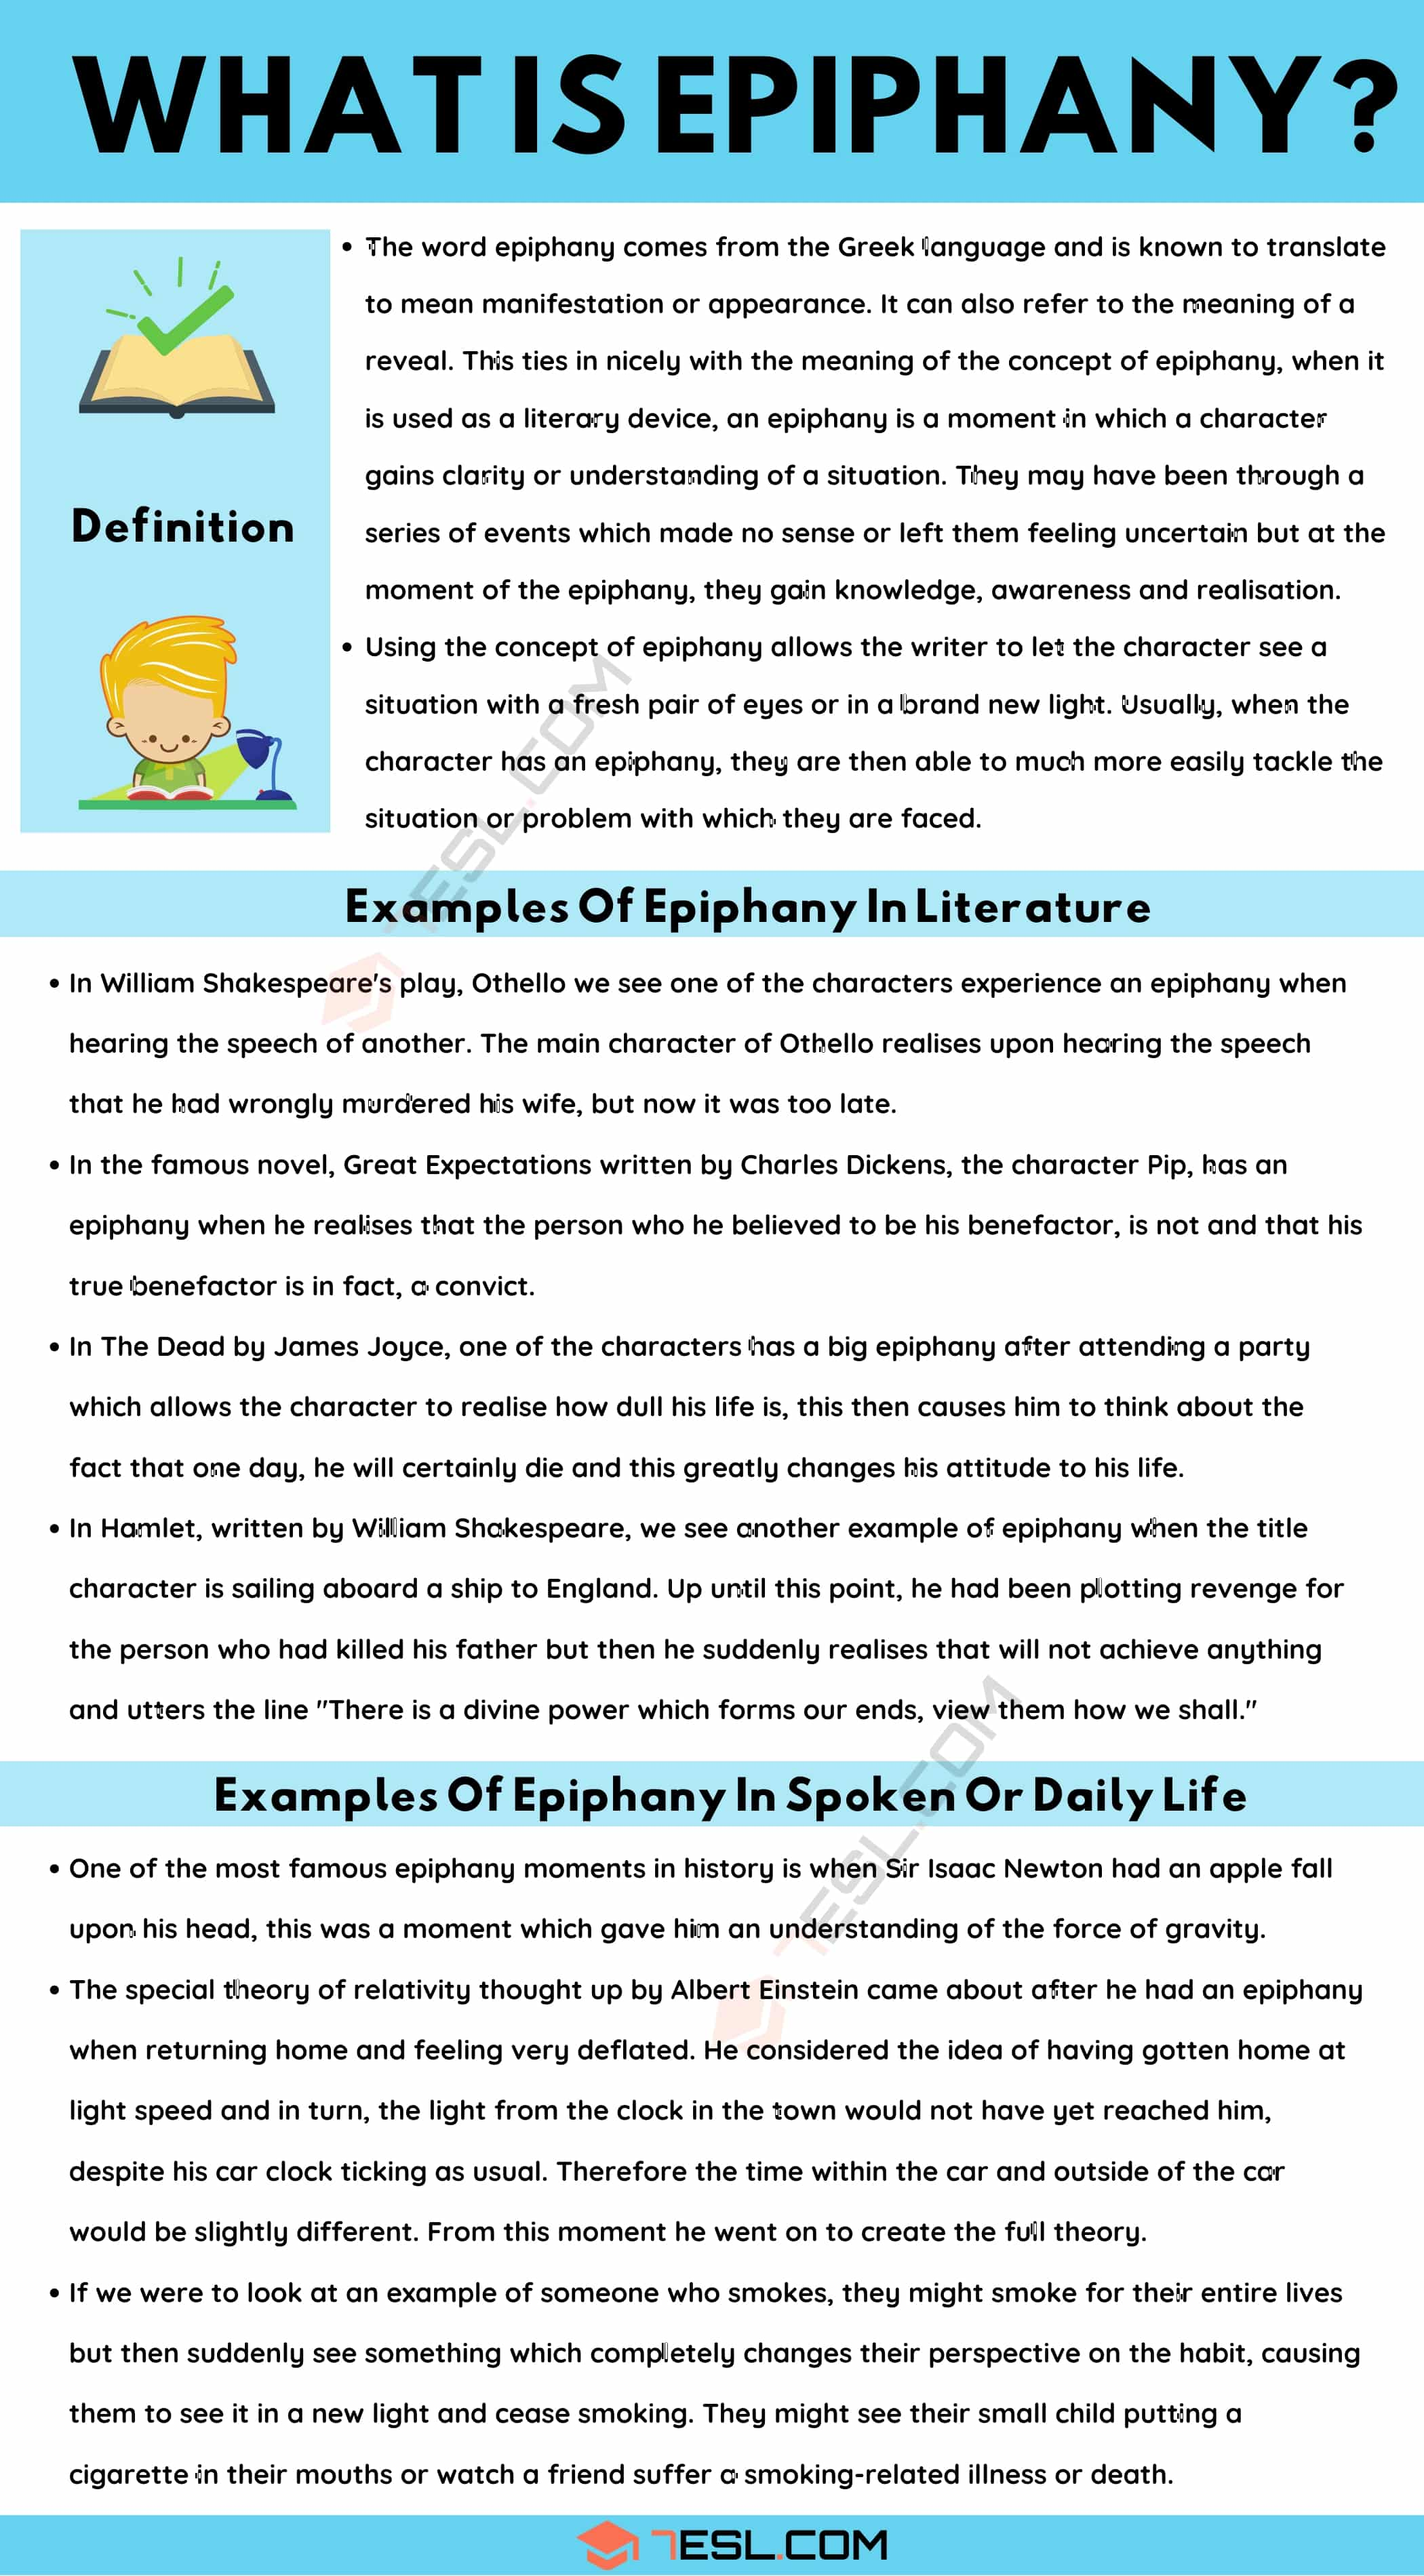 Epiphany: Definition and Great Examples of Epiphany in Spoken Language and Literature